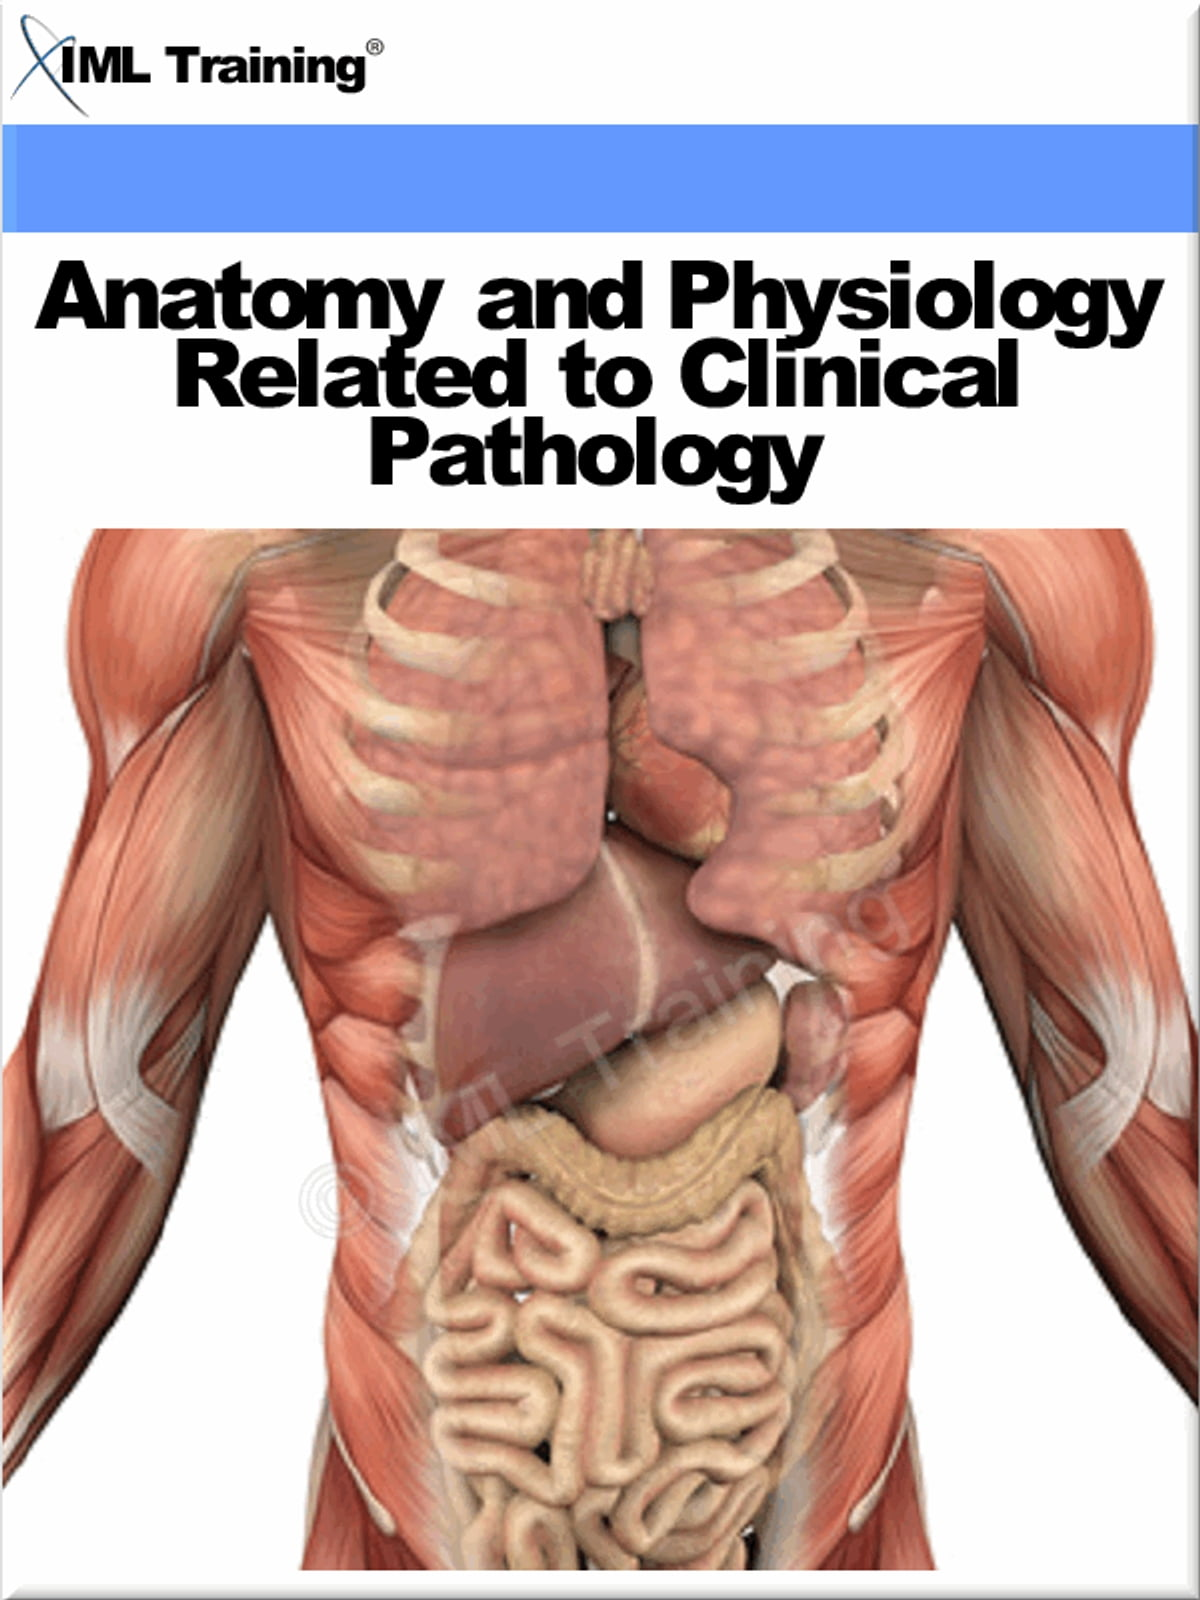 Anatomy And Physiology Related To Clinical Pathology Human Body